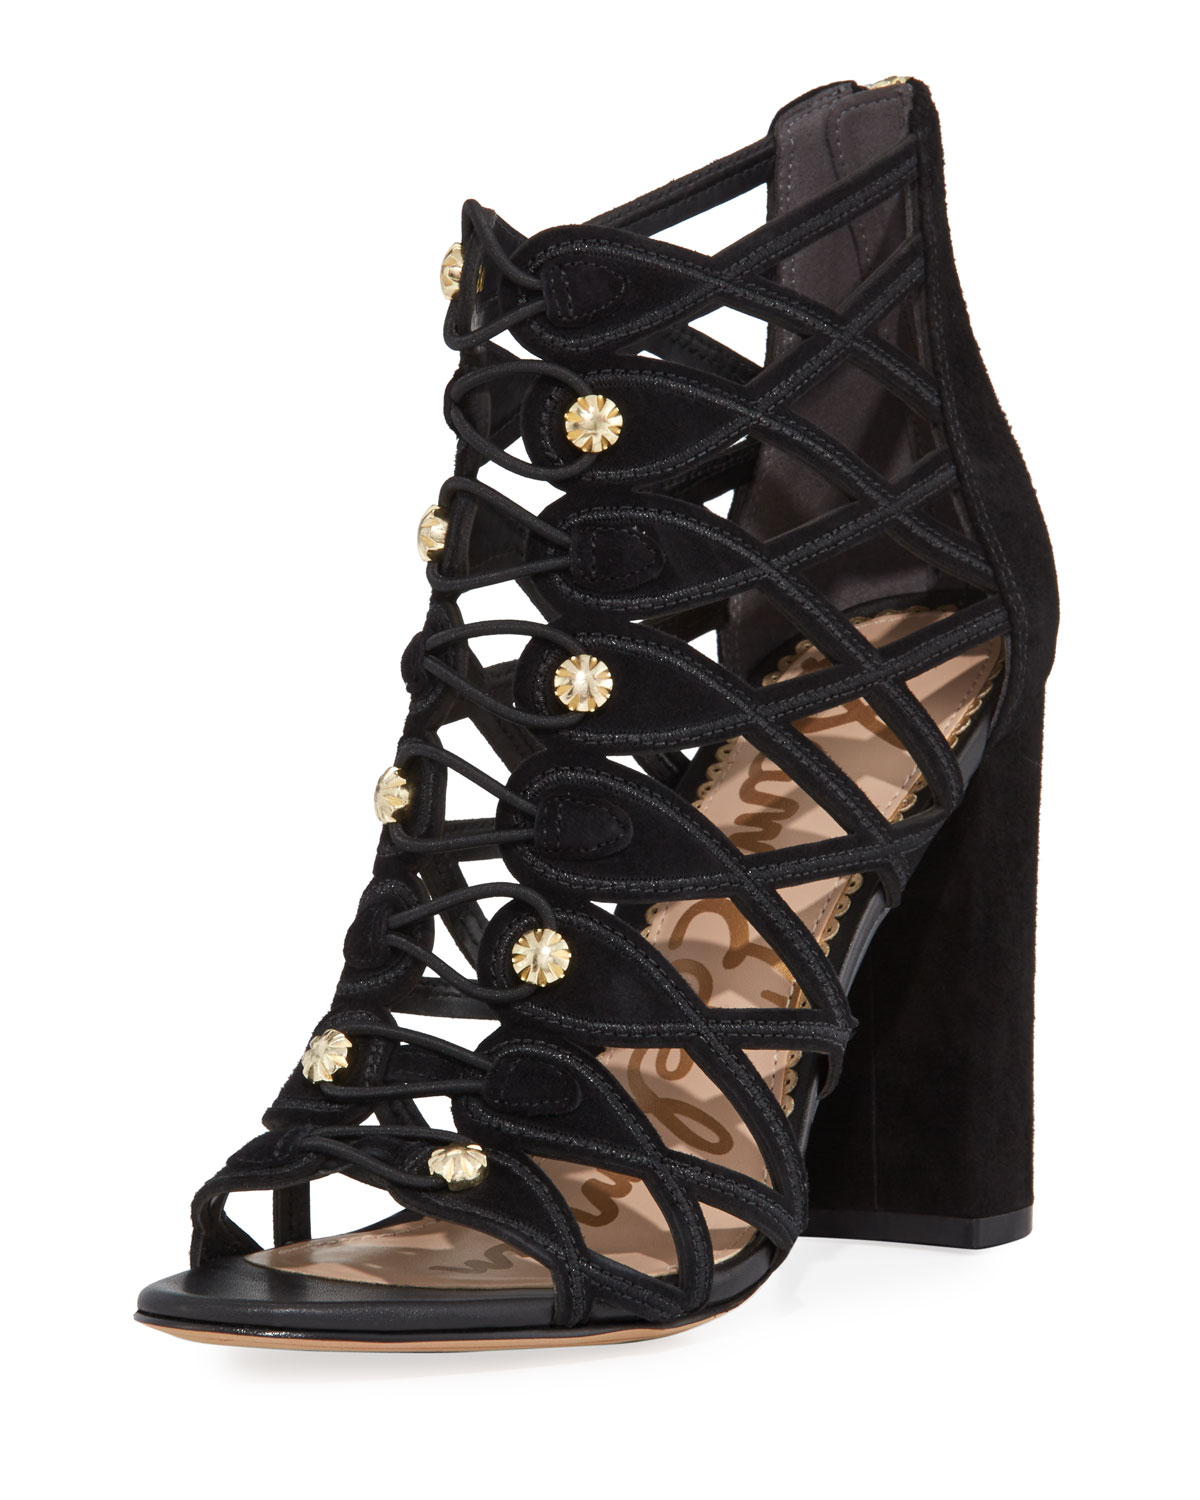 4a50dce31 Sam Edelman Yeager Military Caged Open-Toe Bootie